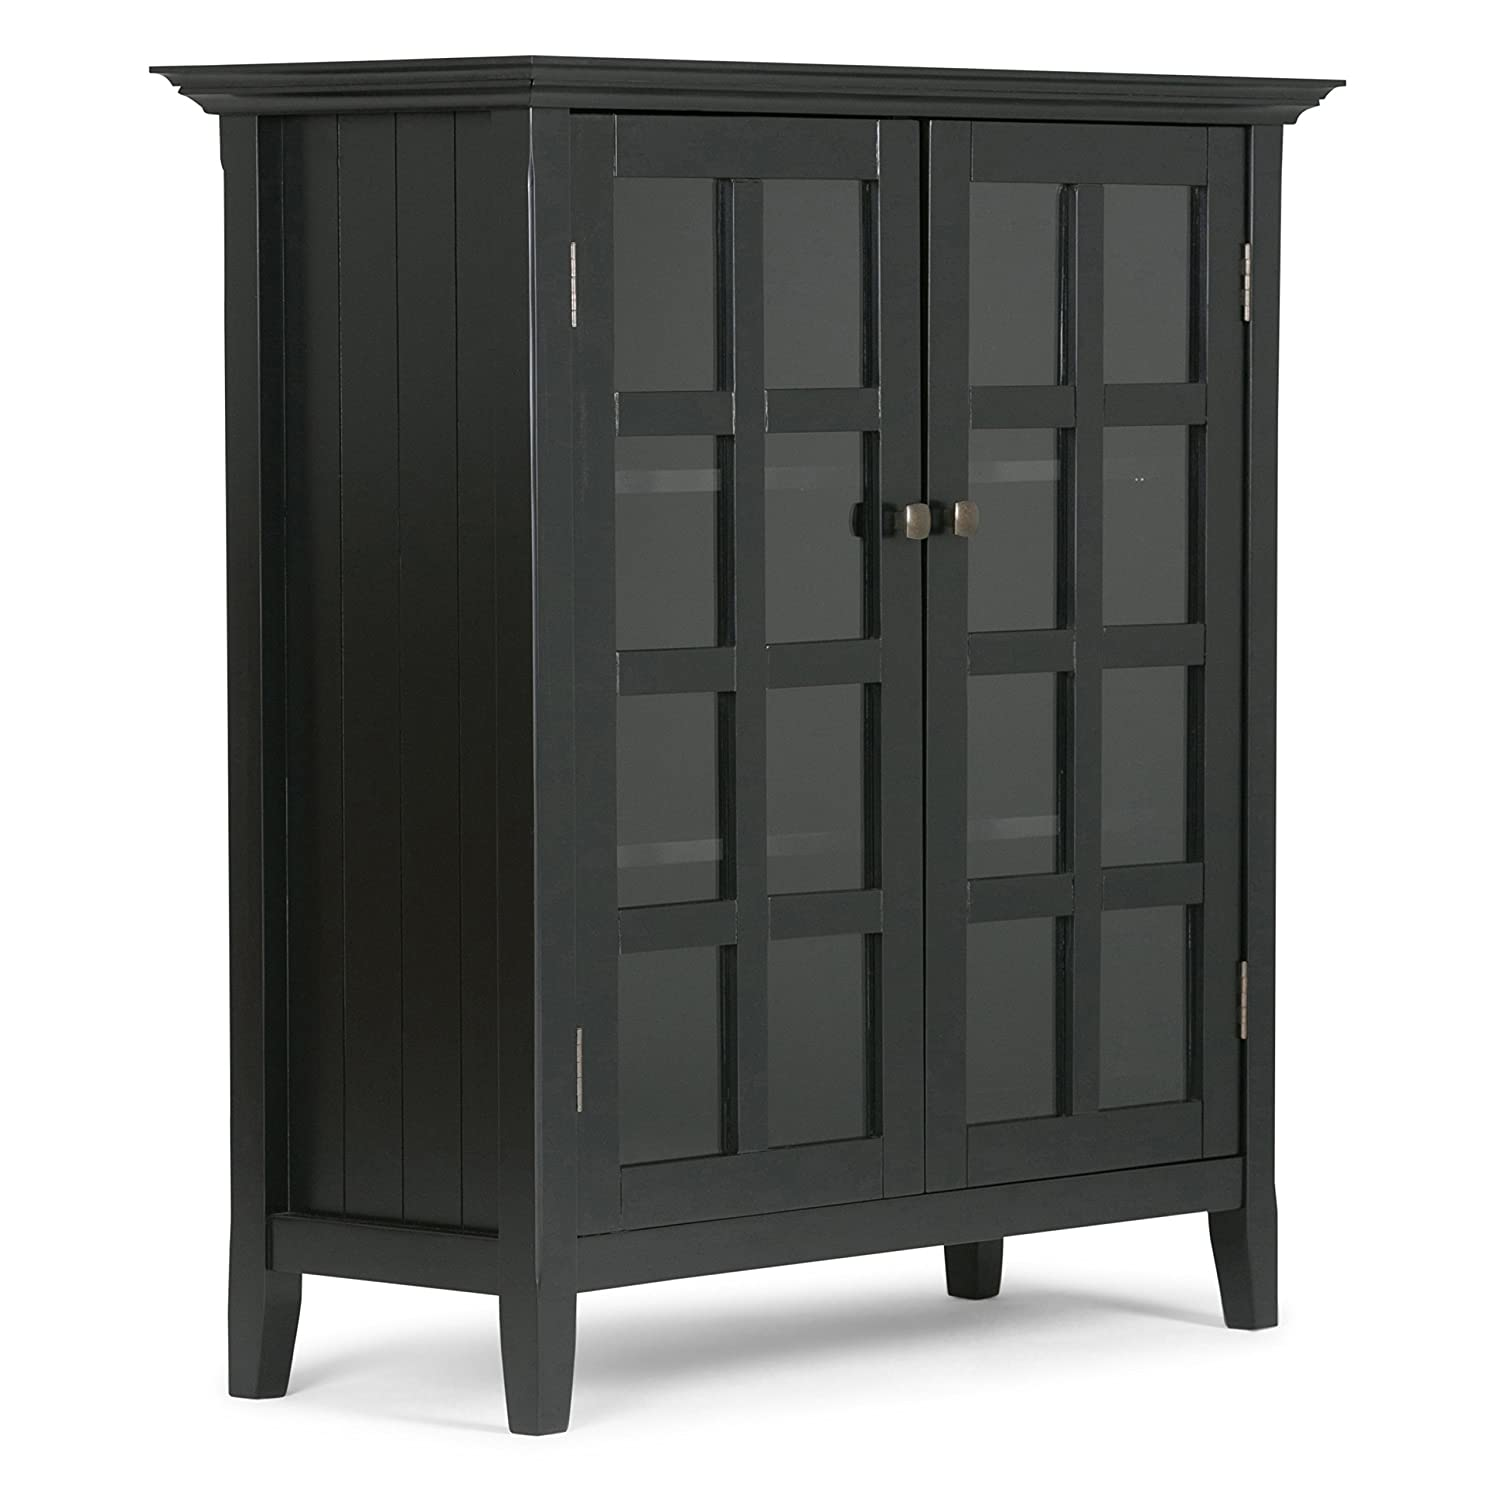 Amazon com simpli home axreg007 bl acadian solid wood medium storage cabinet in black kitchen dining